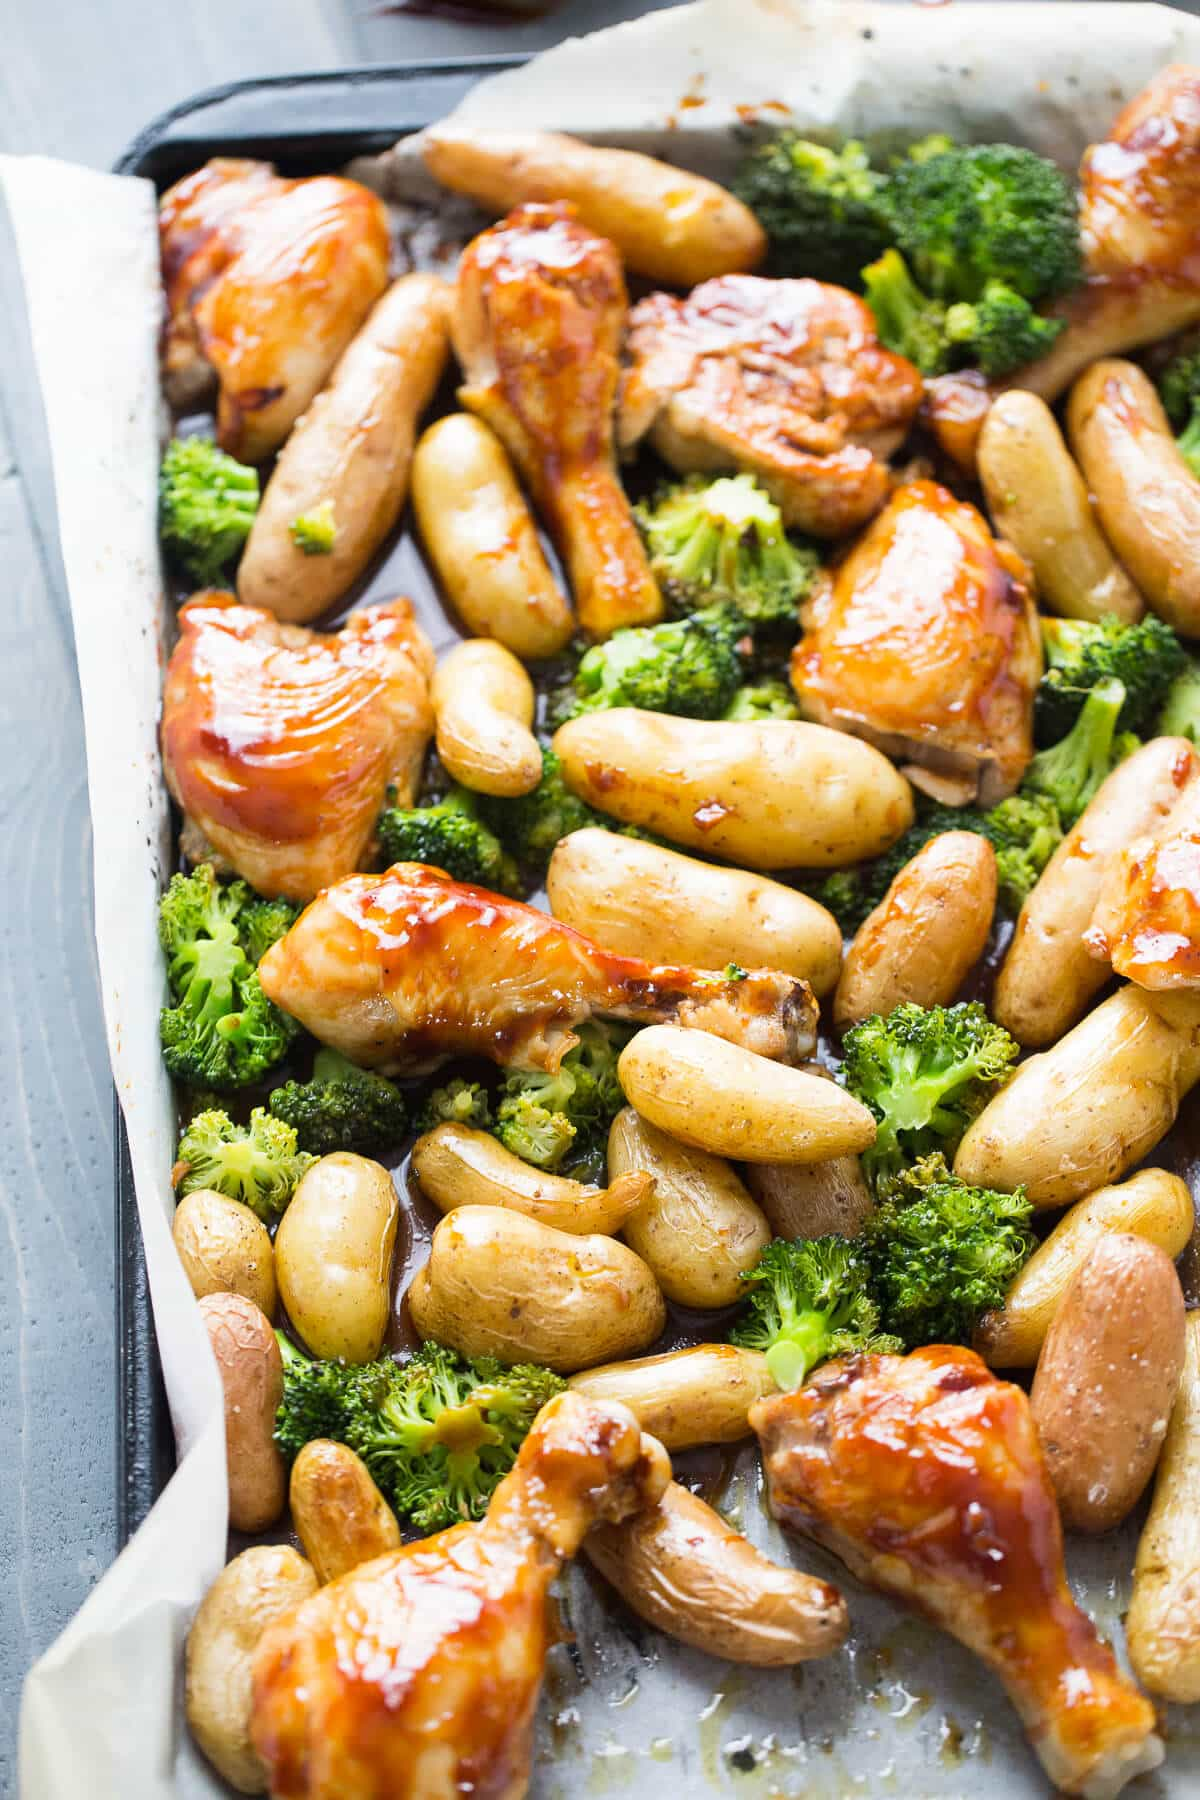 A sheet pan dinner is so easy! Bourbon Chicken is baked and tossed with potatoes and broccoli. The bourbon sauce is subtly sweet and coats each piece perfectly!